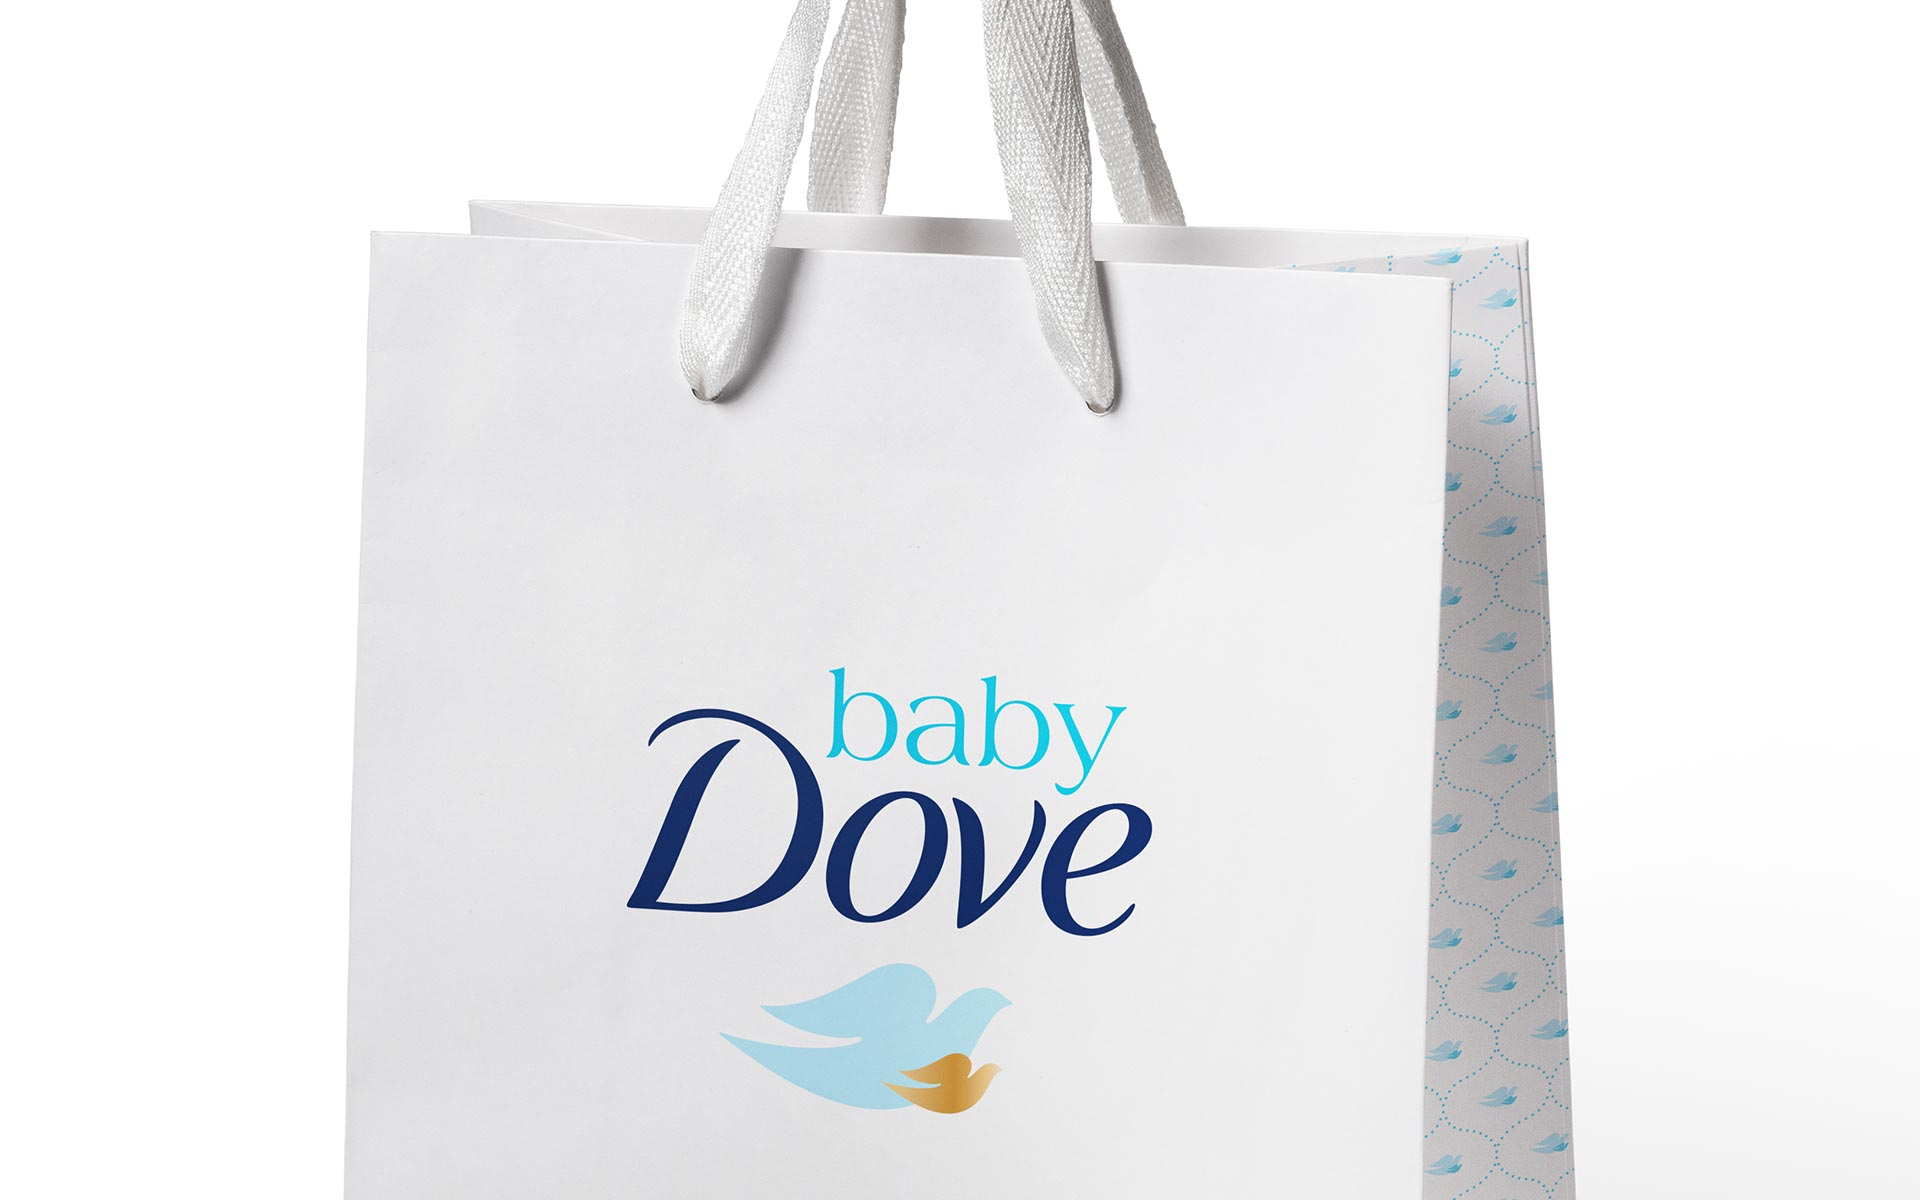 Baby Dove - Marketing Materials - Retail Bag